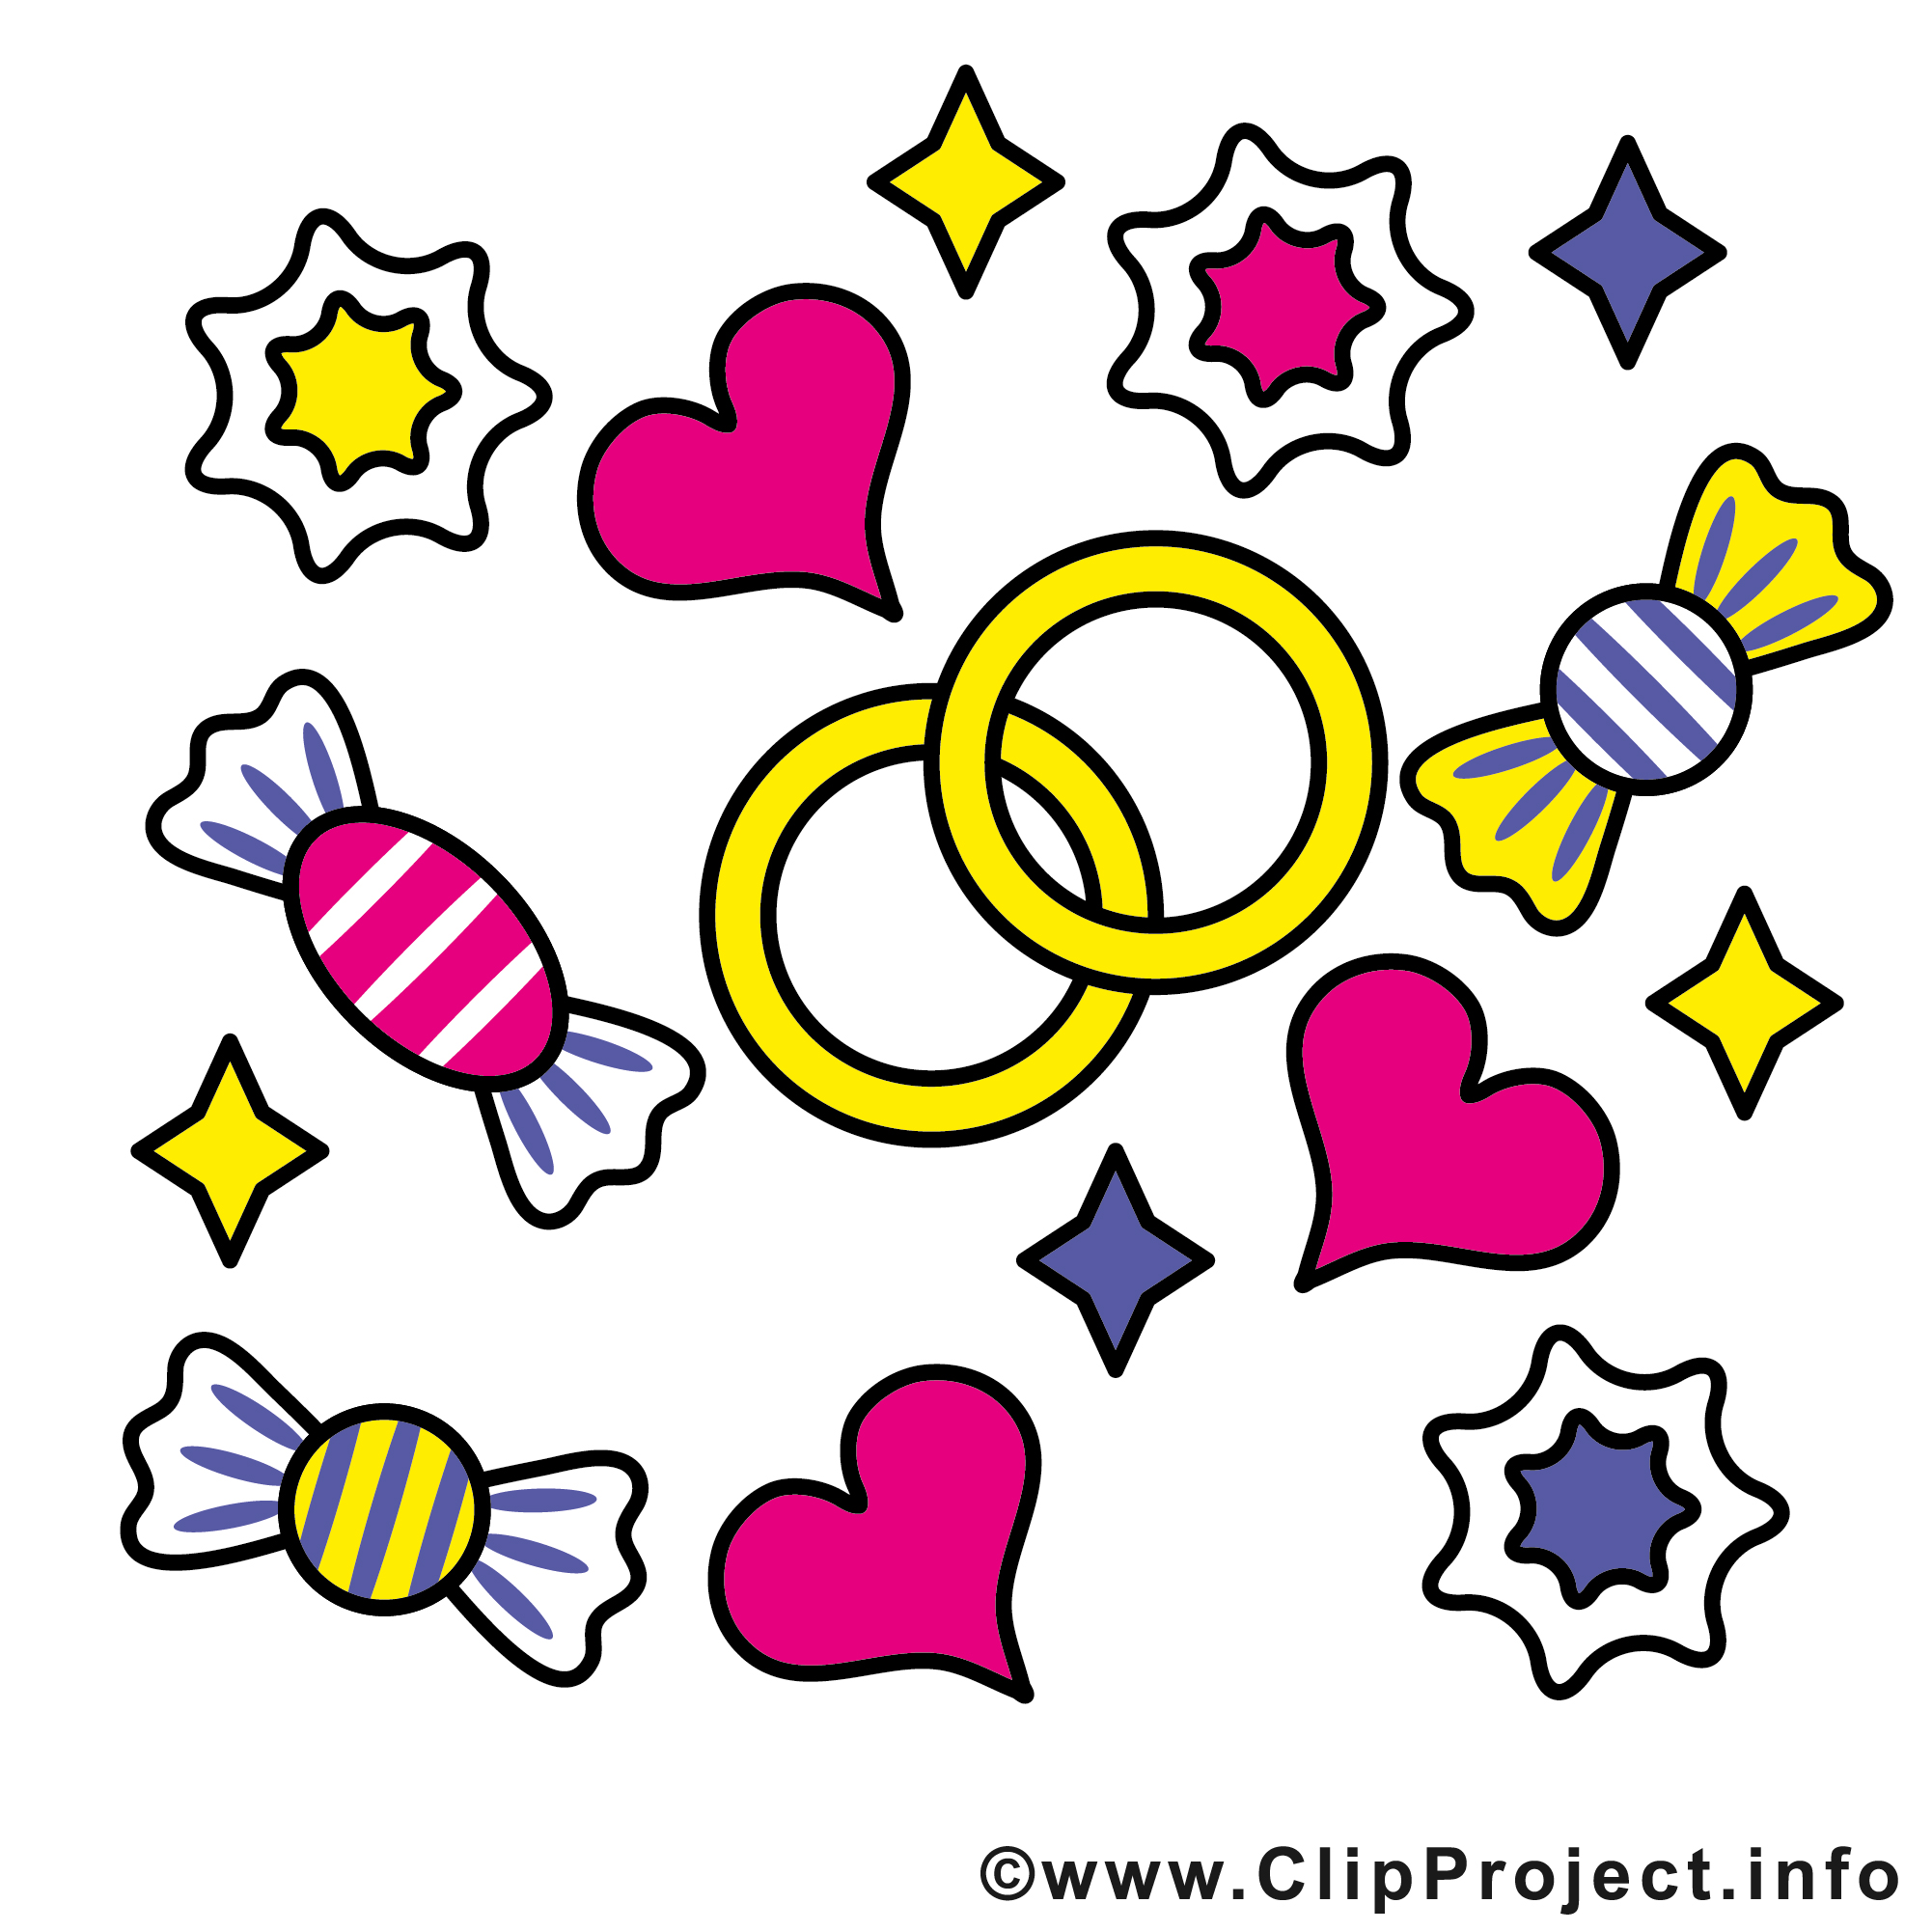 Marriage Clipart Free Download | Free download best Marriage Clipart ...